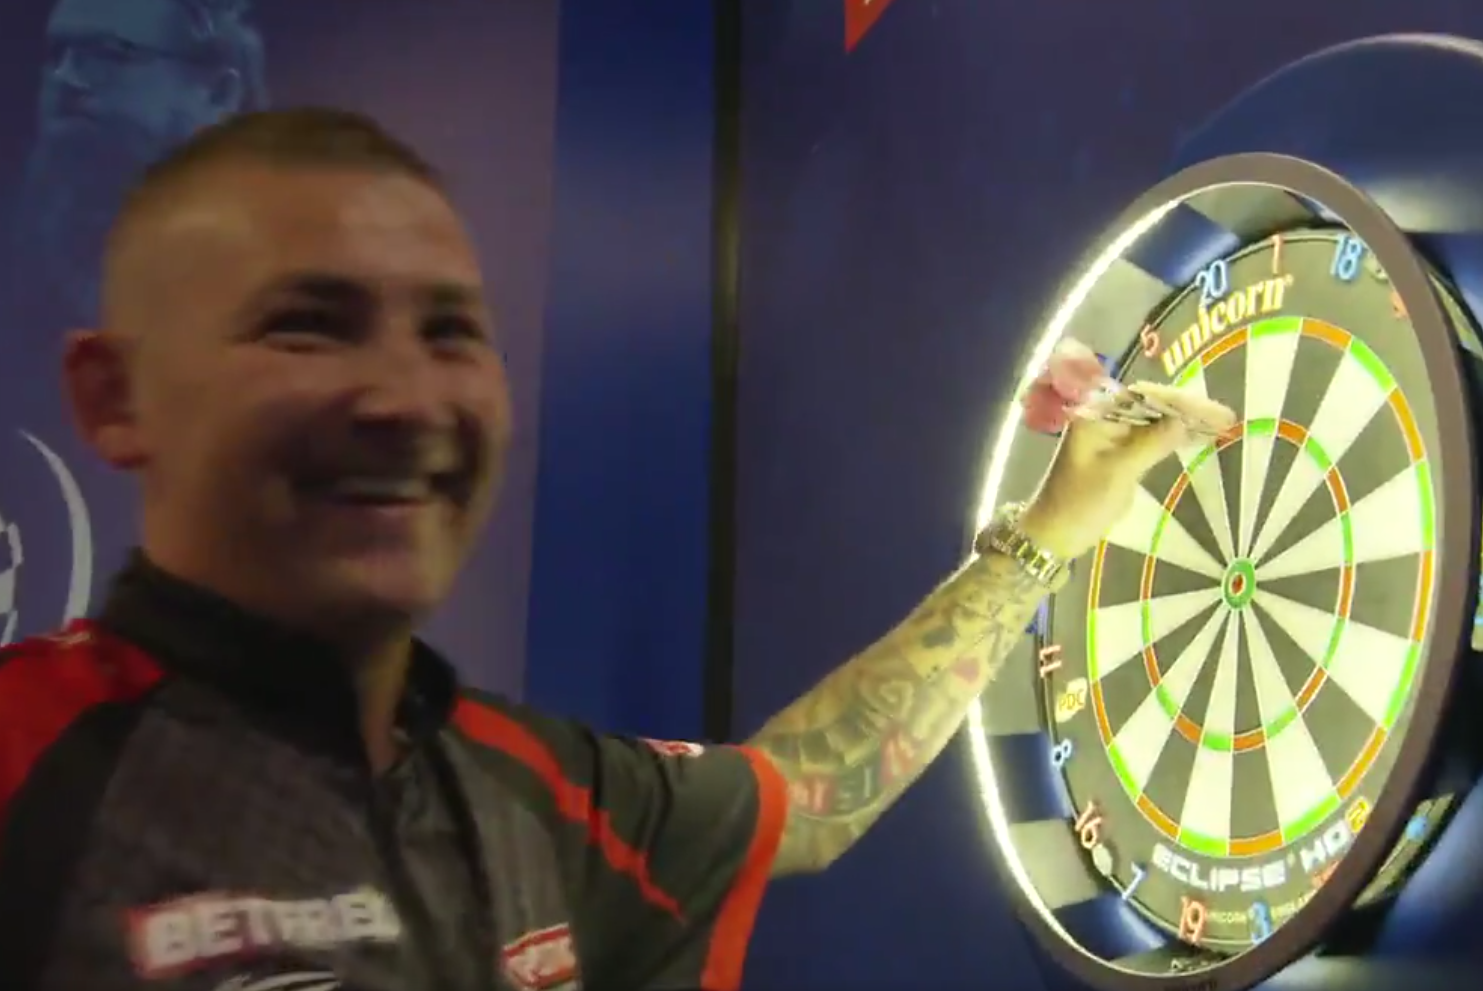 Watch Nathan Aspinall Finish His Nine-Dart Challenge In Style